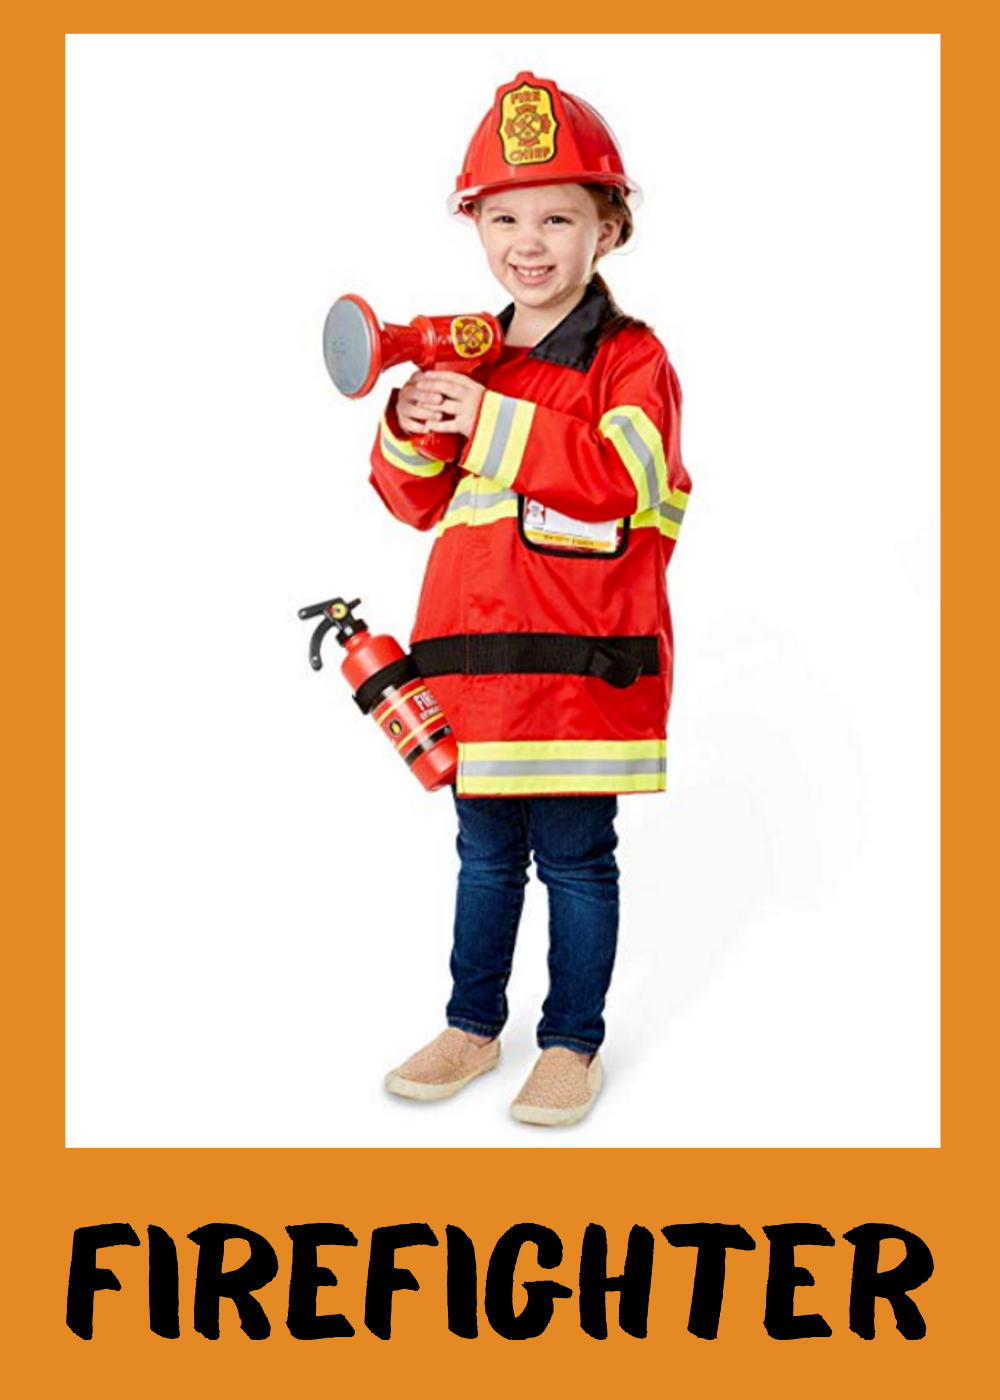 Fire Chief   for $24.99.